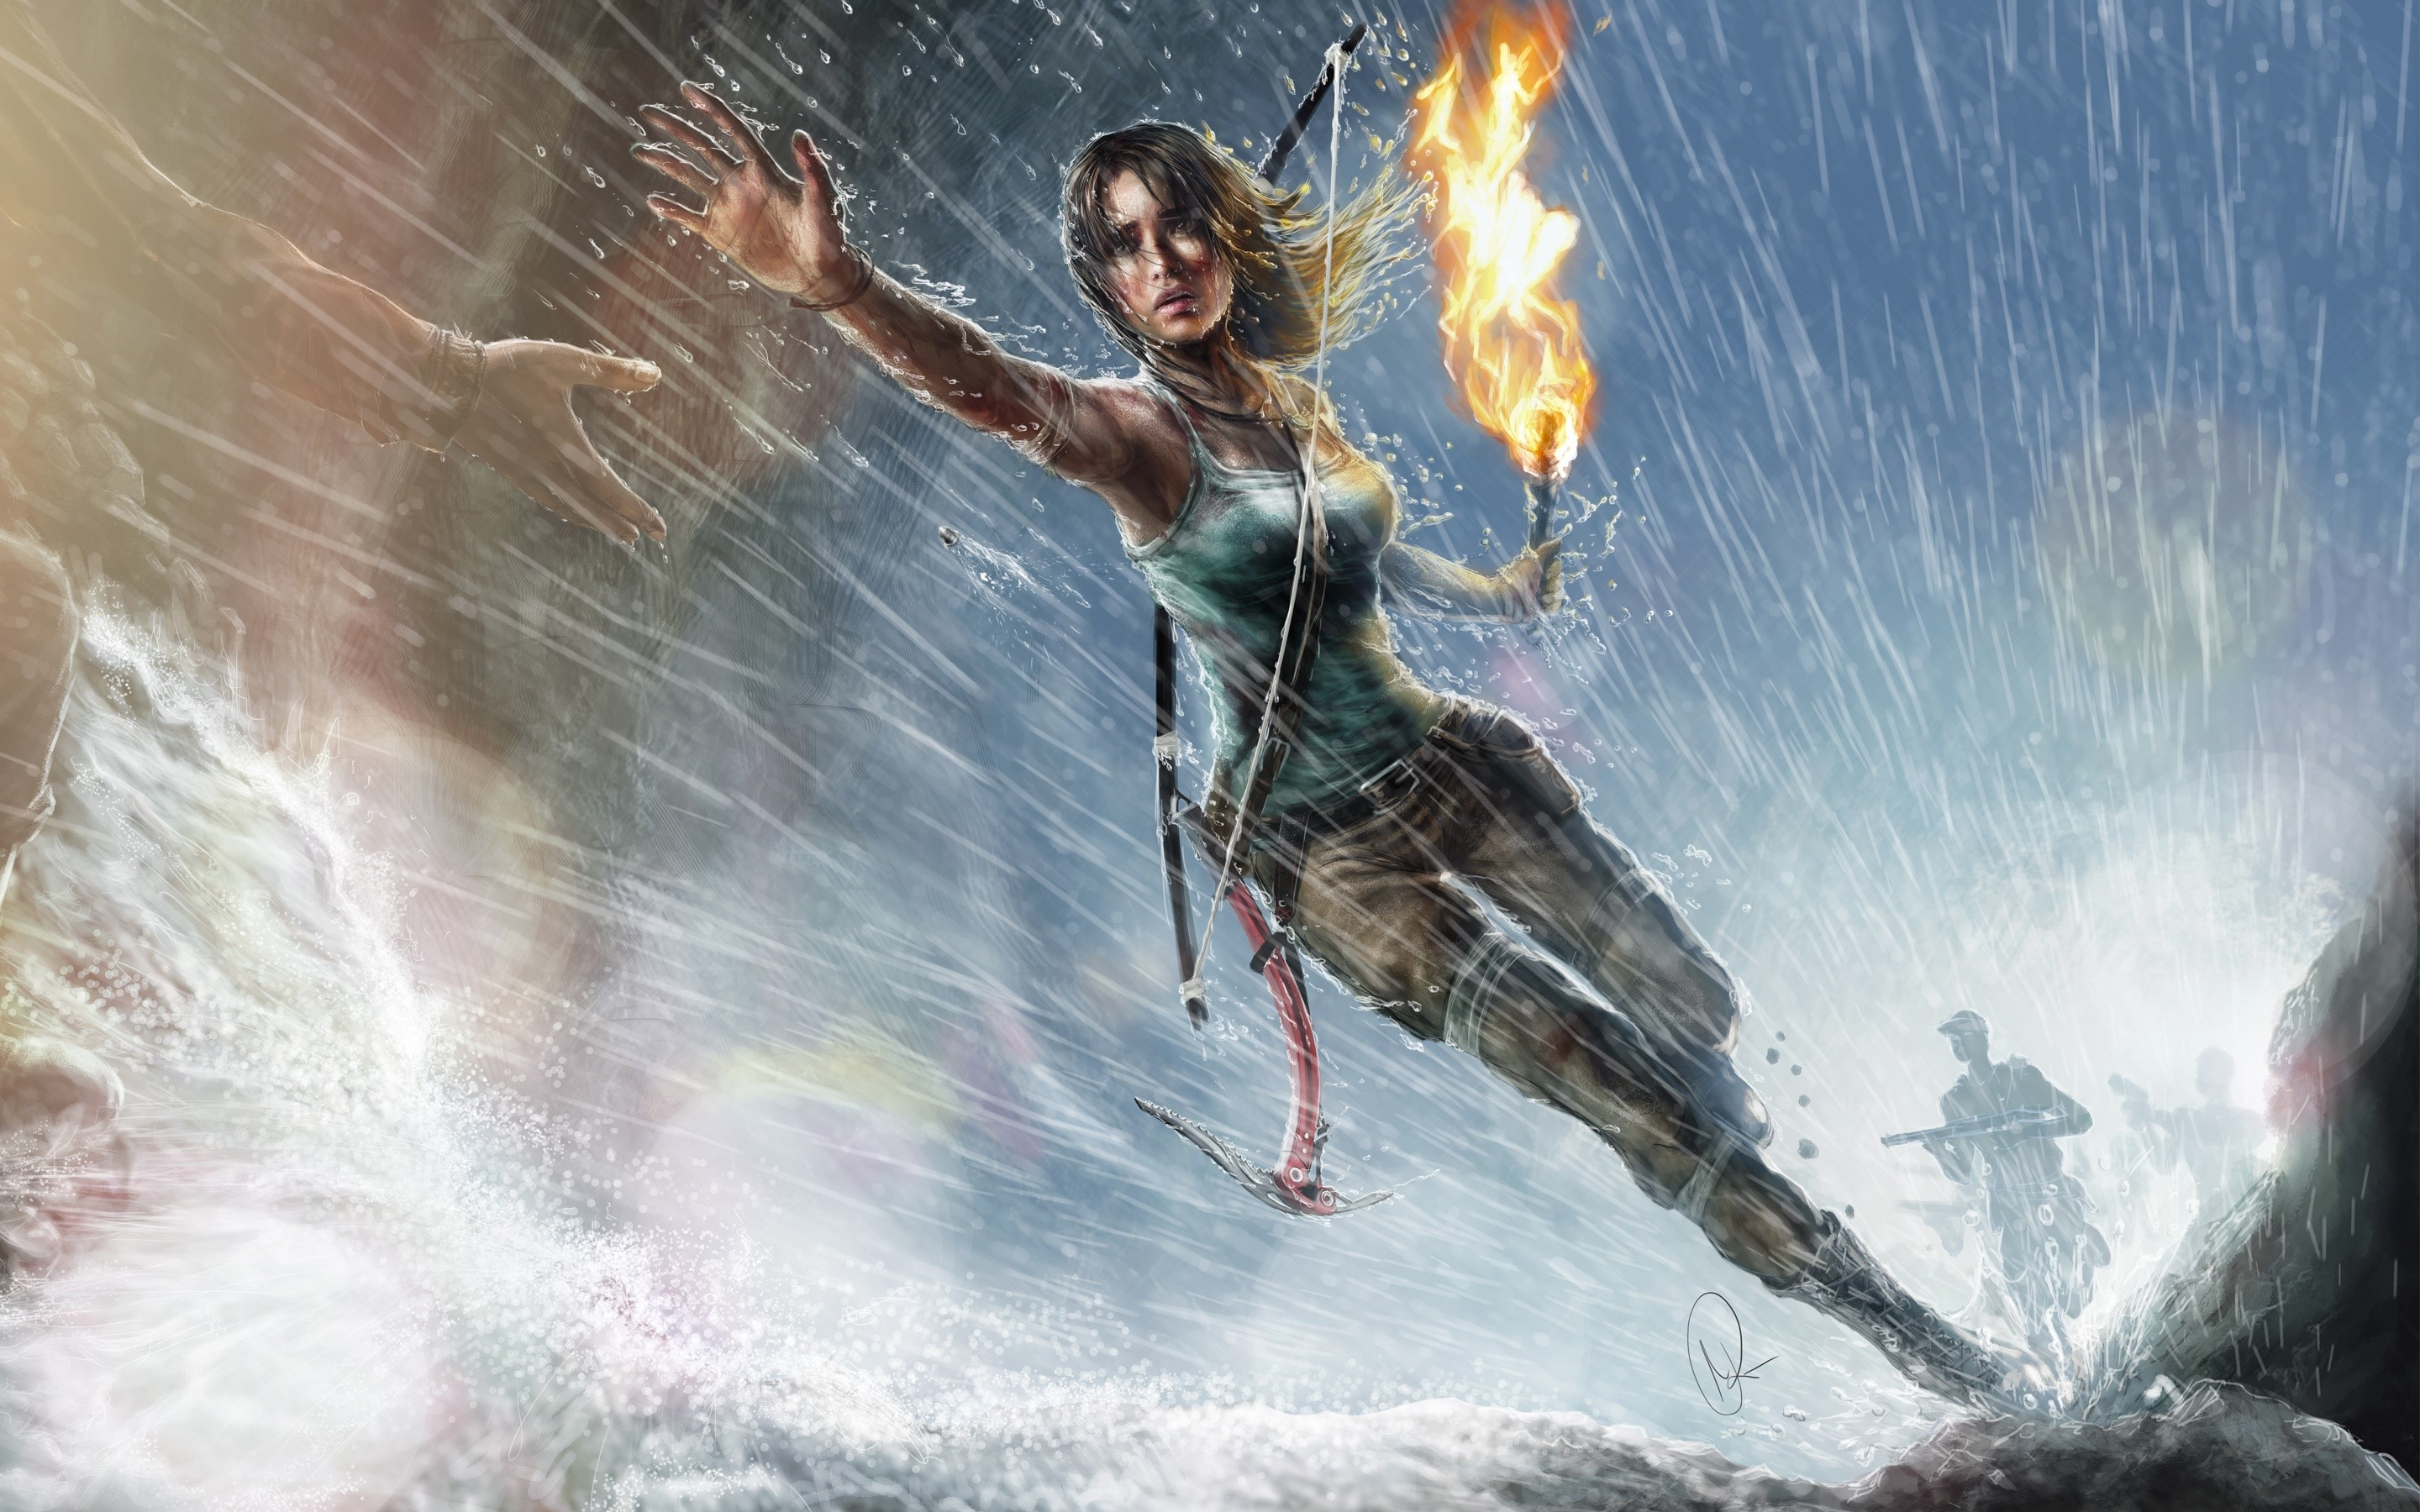 Wallpaper Lara Croft Artwork